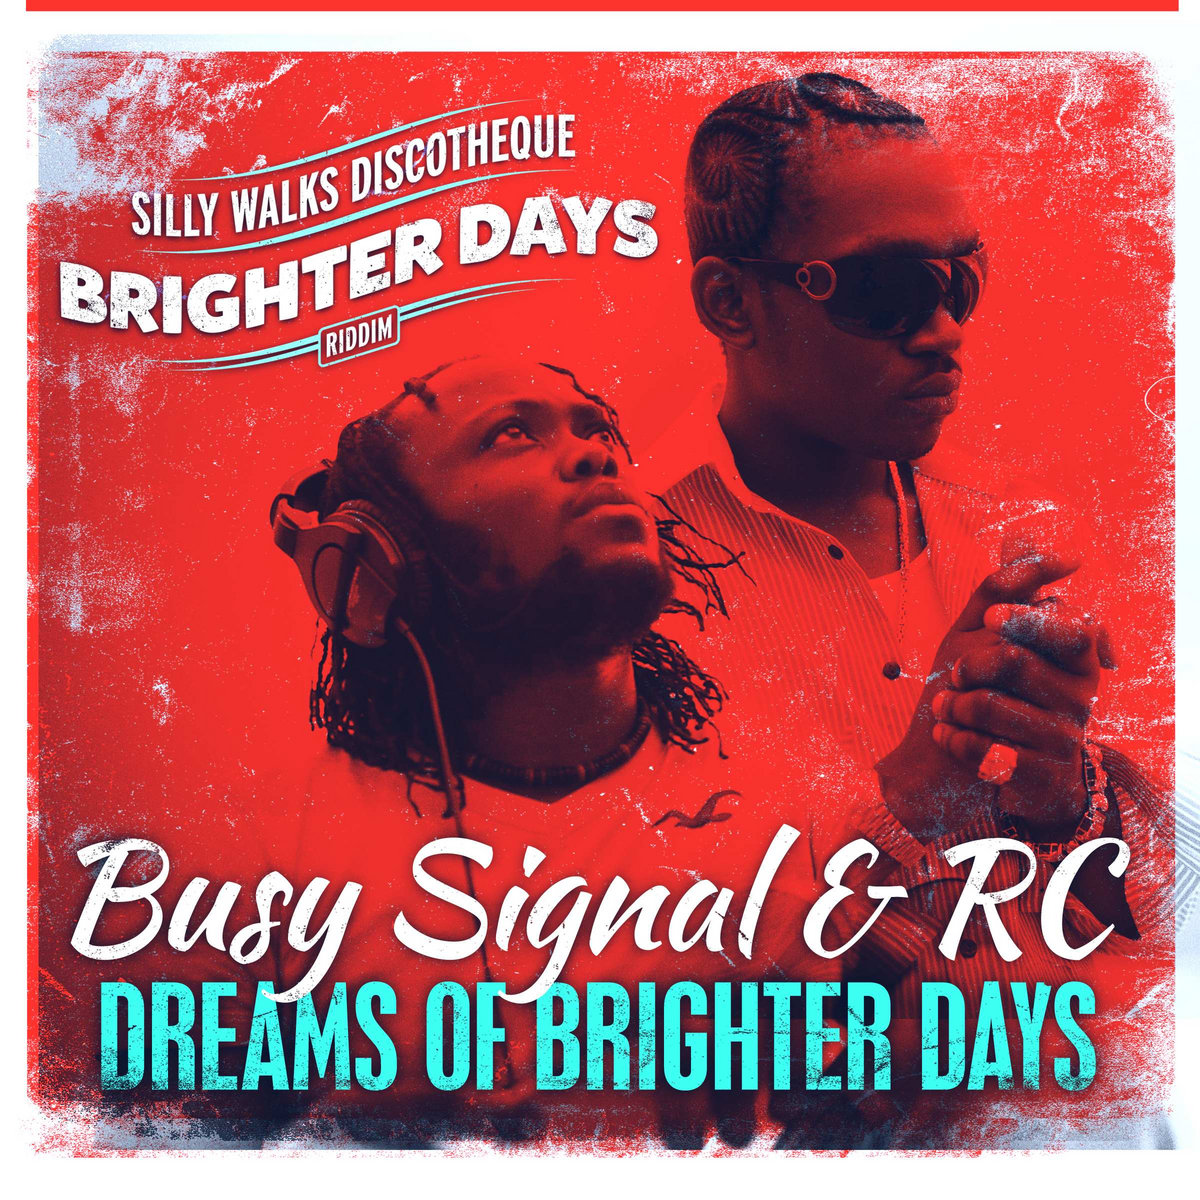 Dreams of Brighter Days (Brighter Days Riddim) | Silly Walks